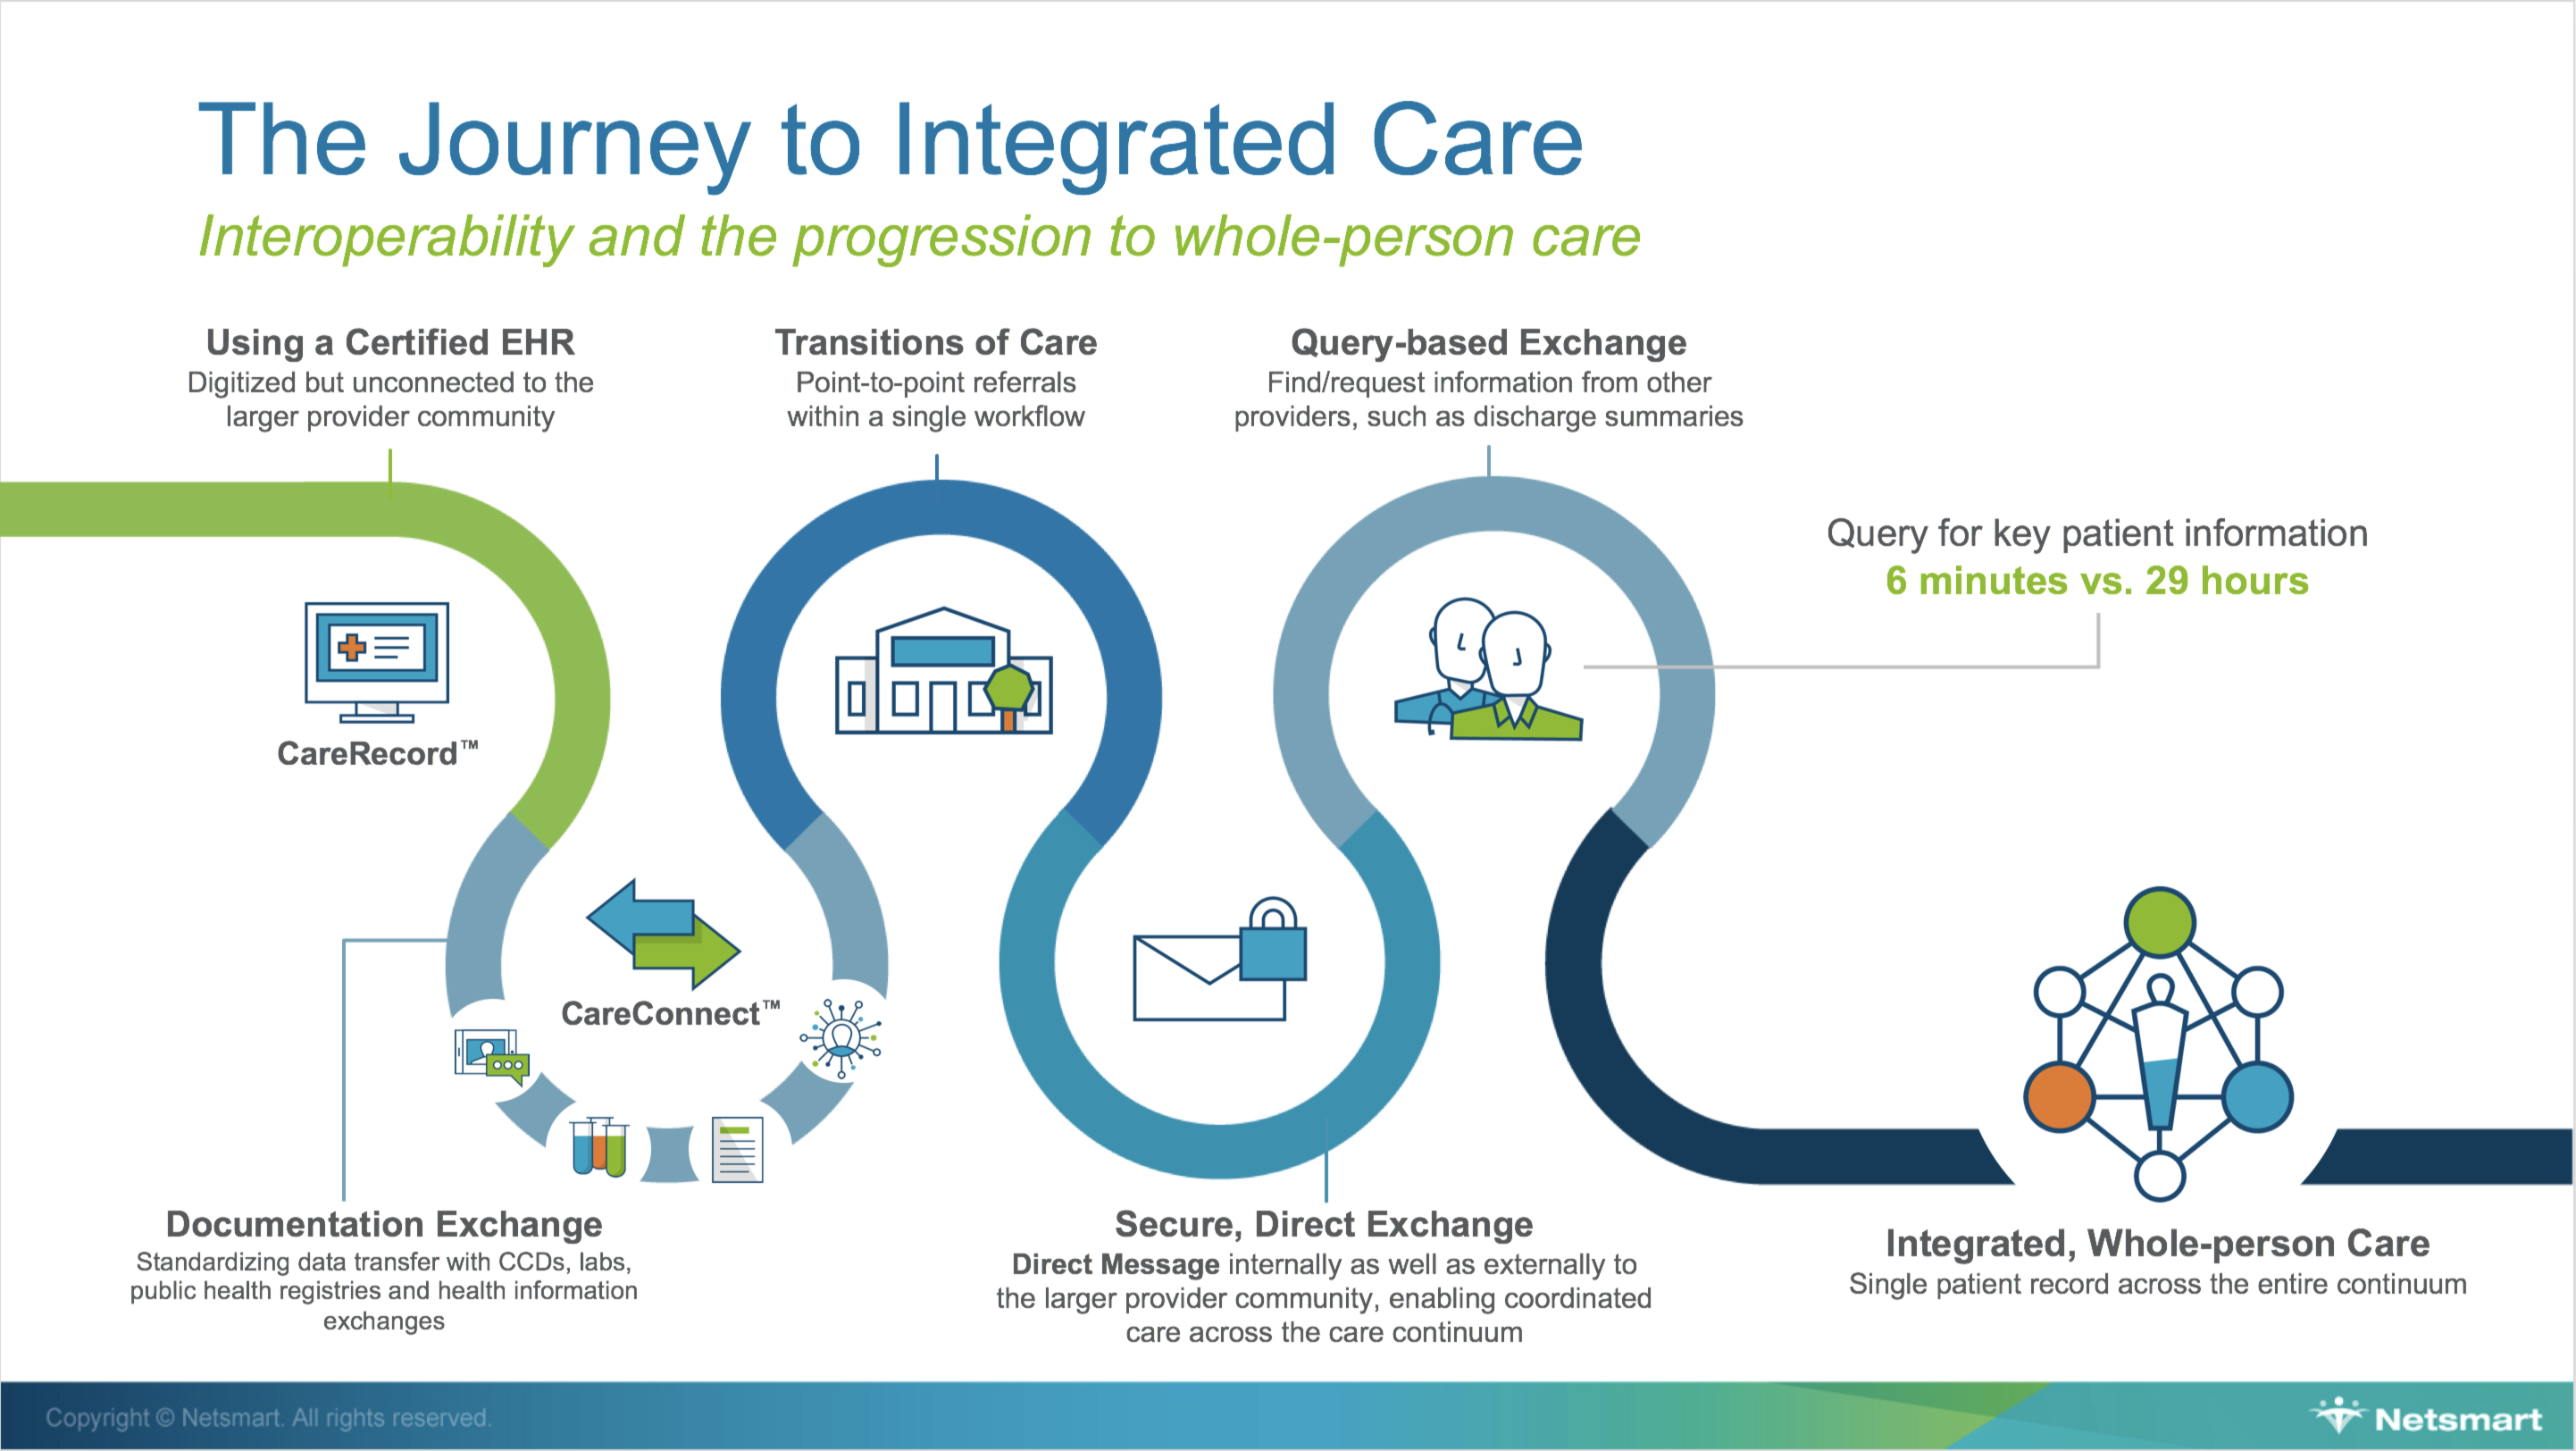 The Journey to Integrated Care: Interoperability and the progression to whole-person care